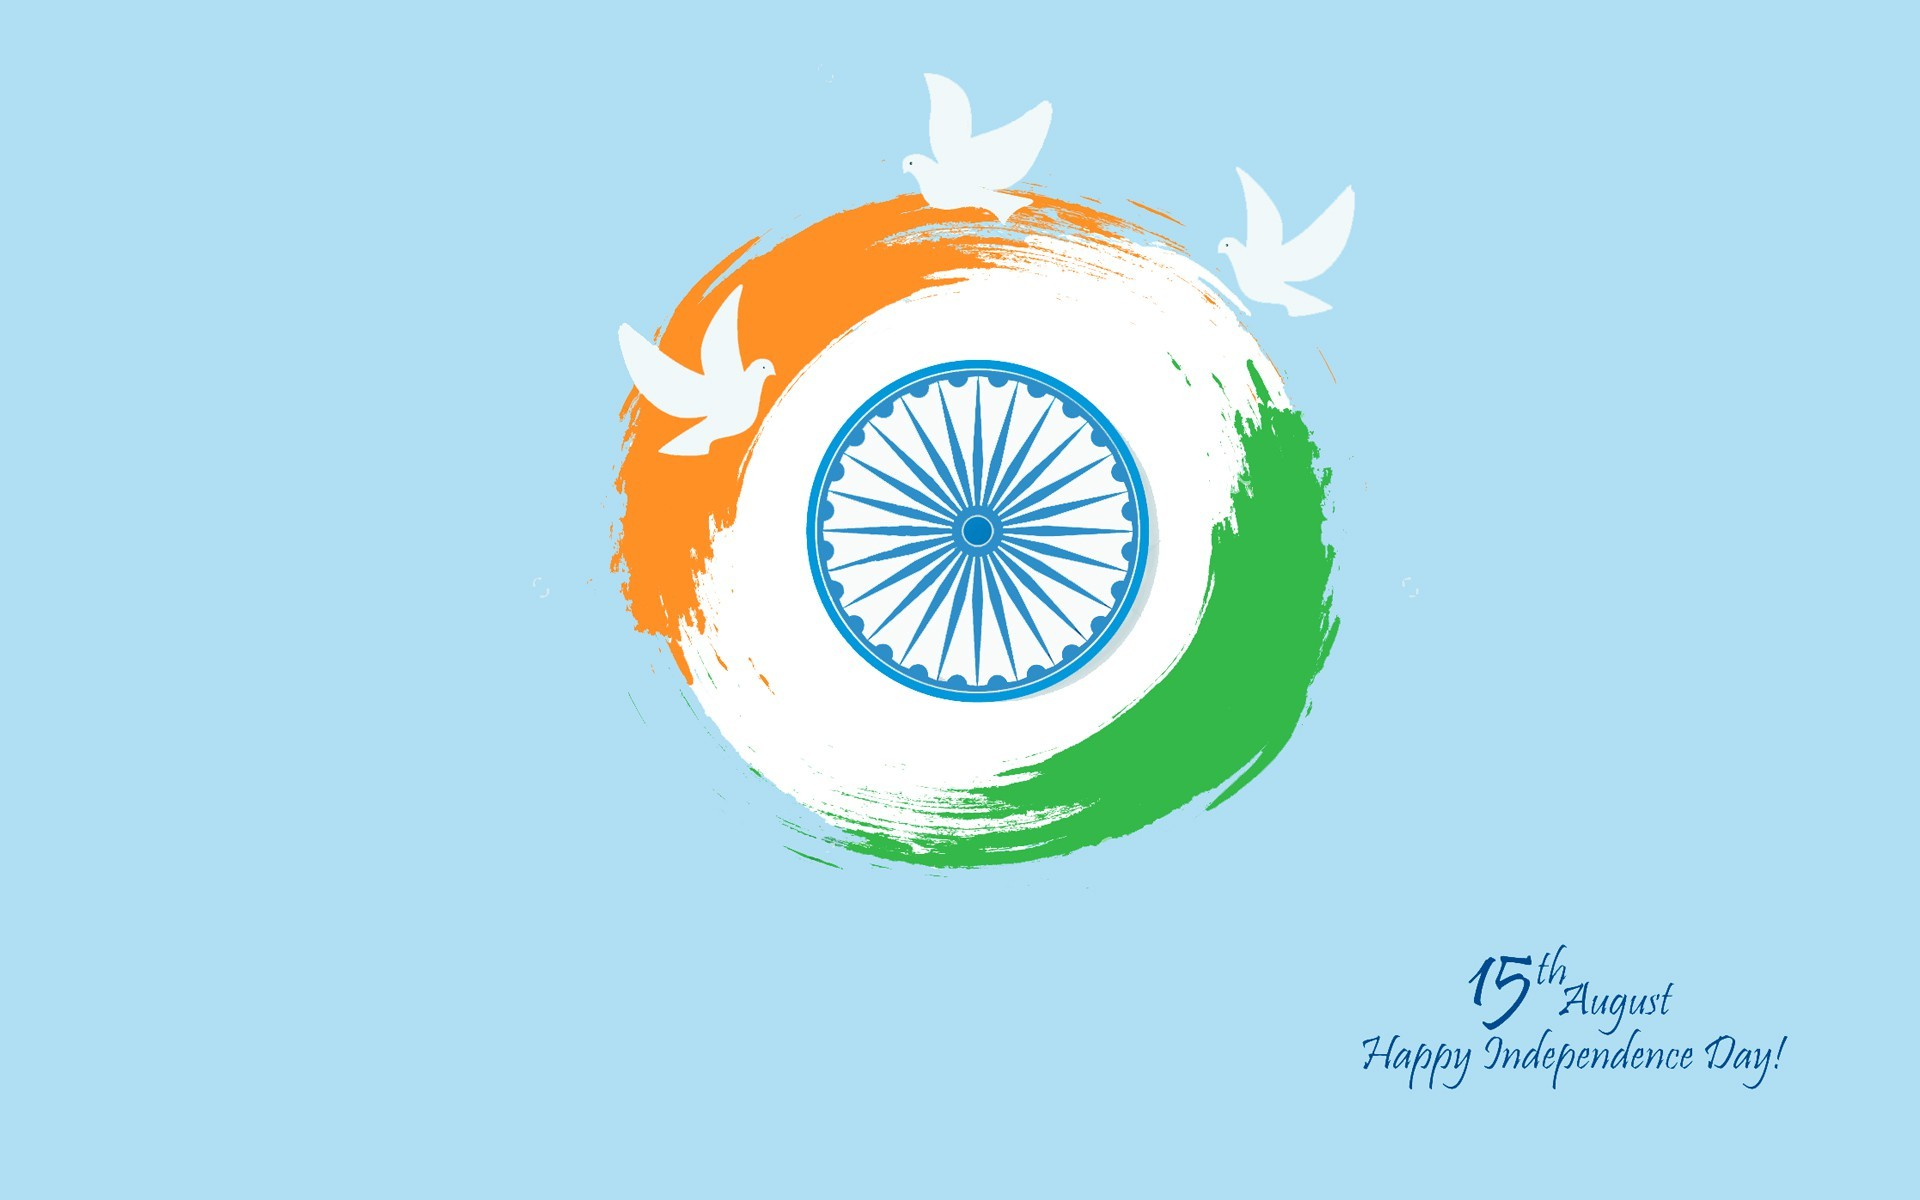 Day Happy Hd Indpeneence: Indian Independence Day HD Pic Wallpaper 2018 (79+ Images